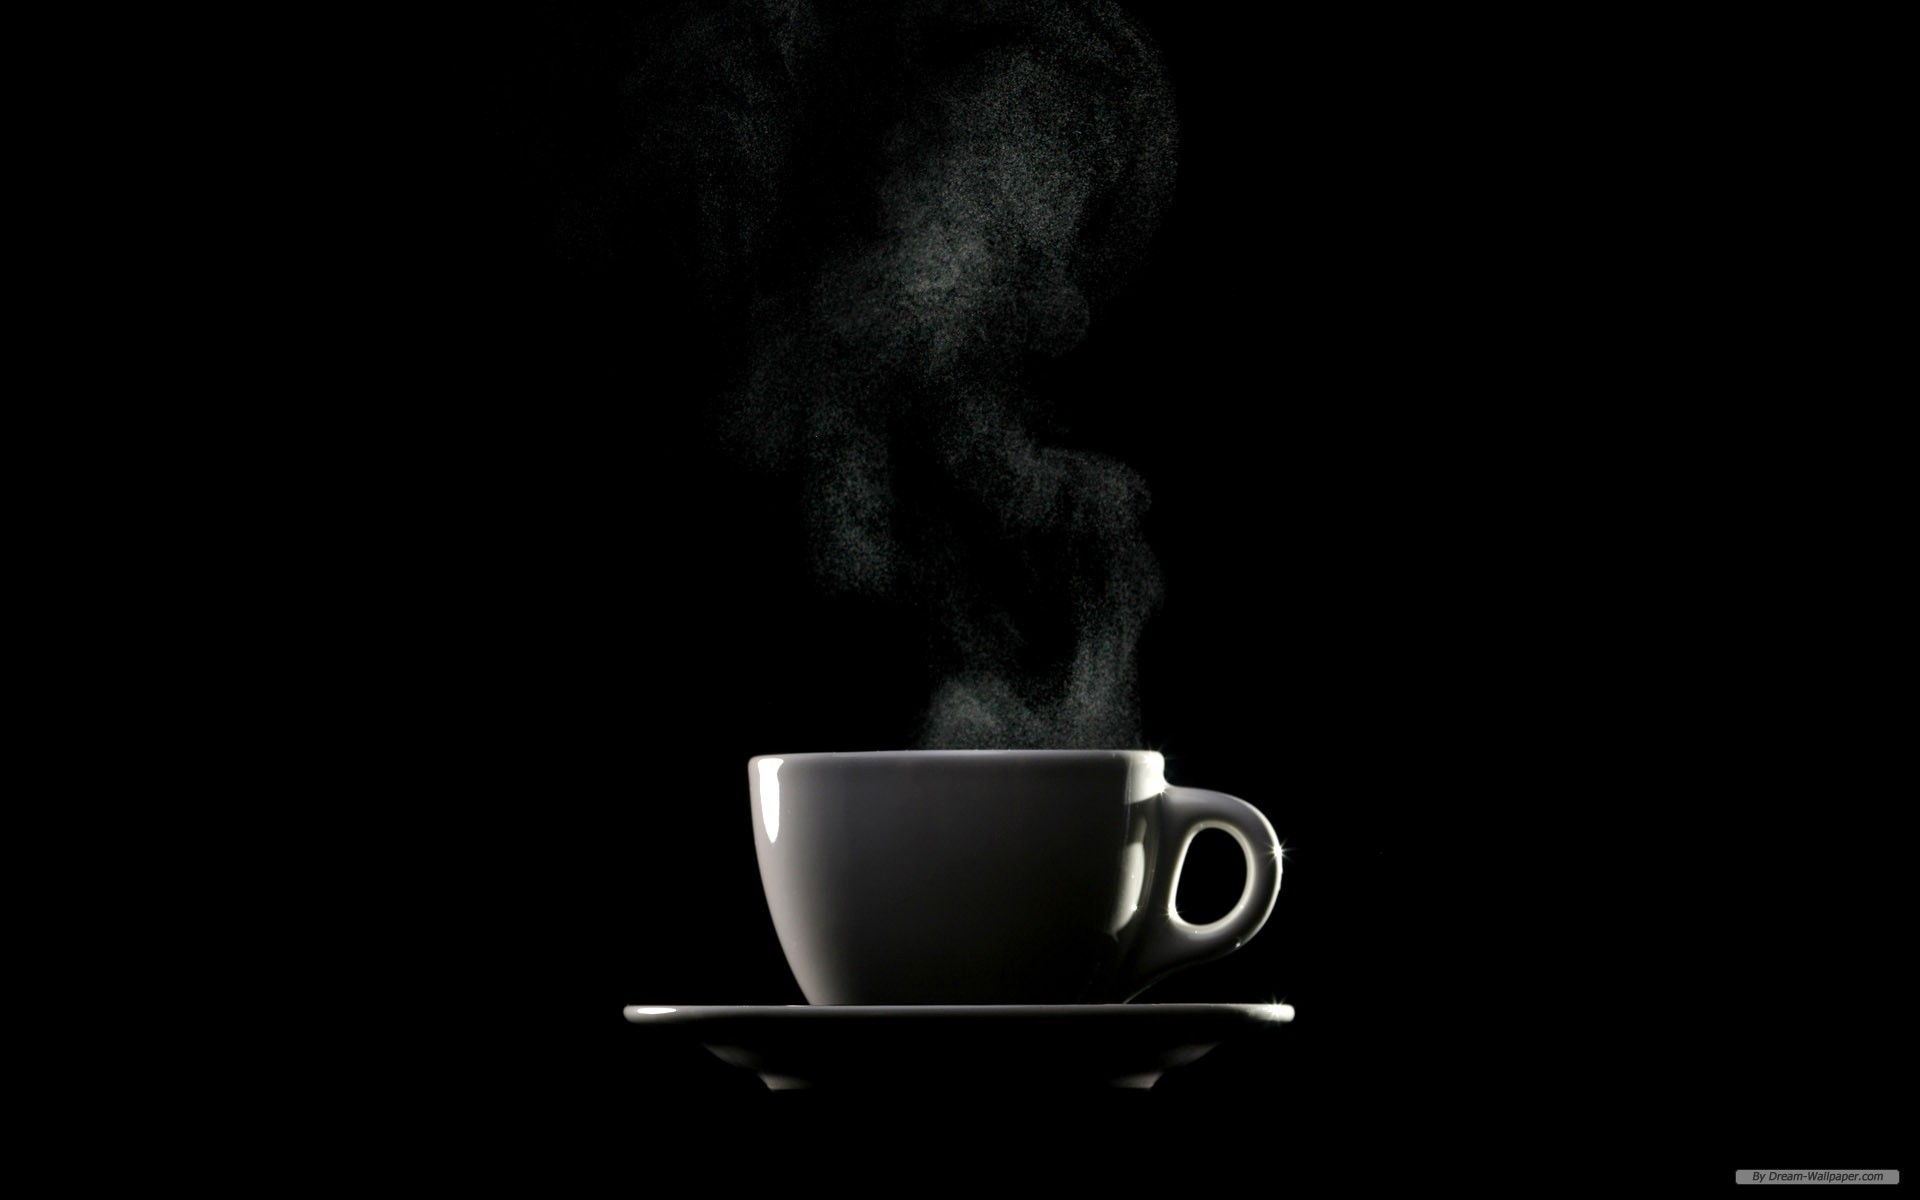 Steaming Coffee Cup A Pondering Mind 1920x1200